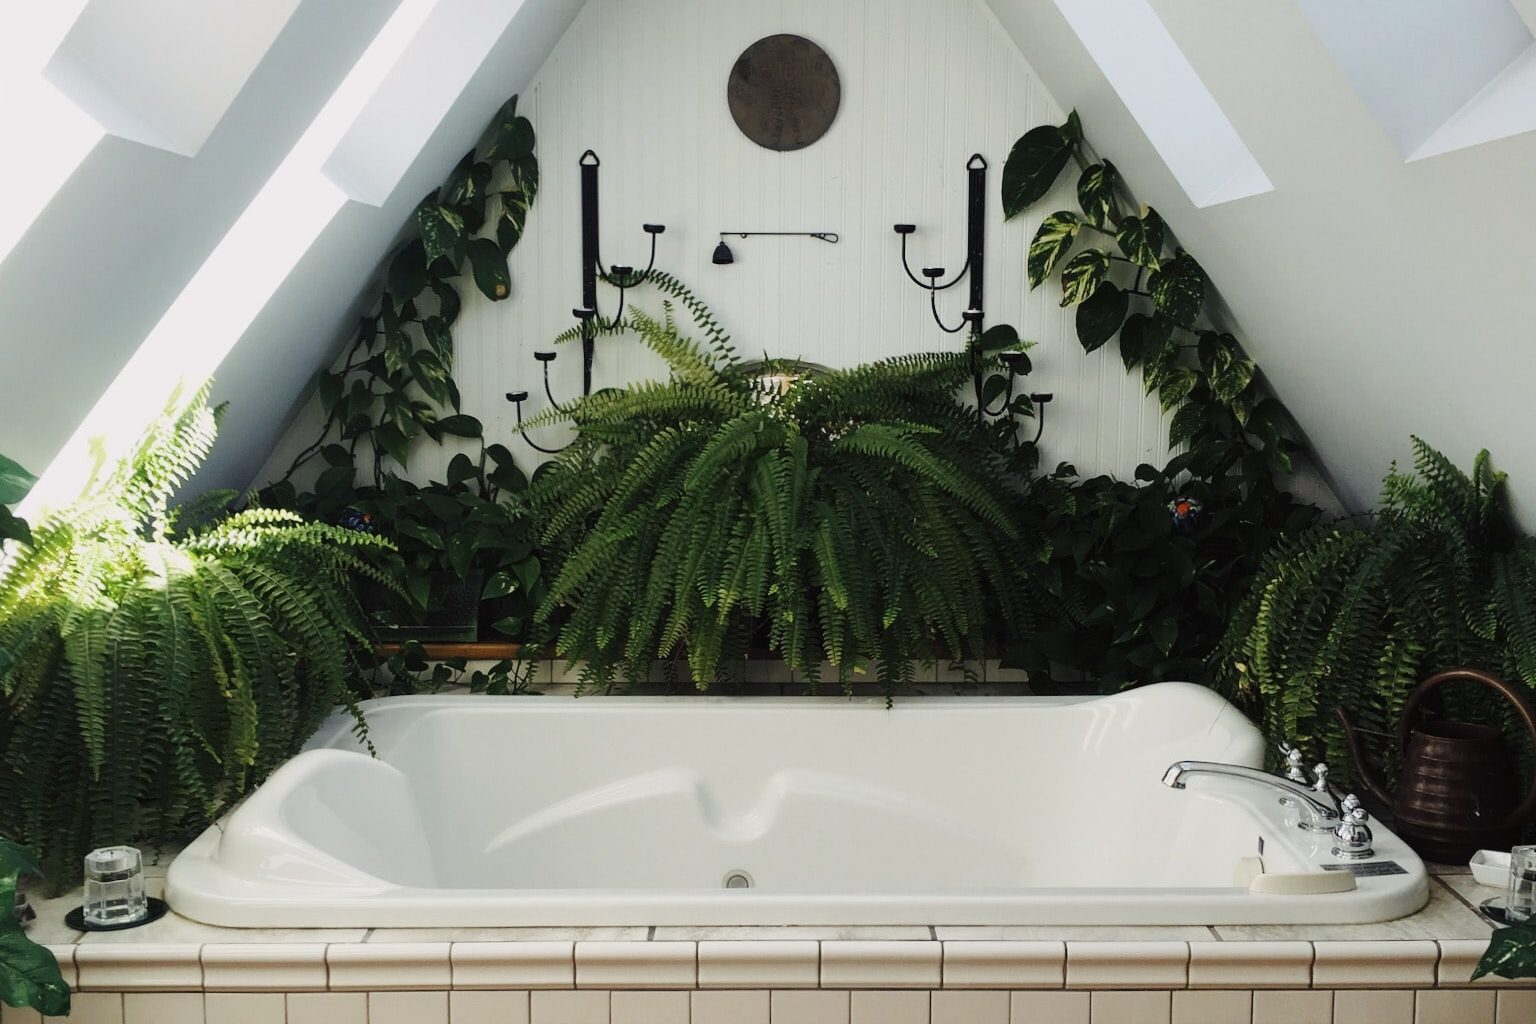 bath tub surrounded by green plants